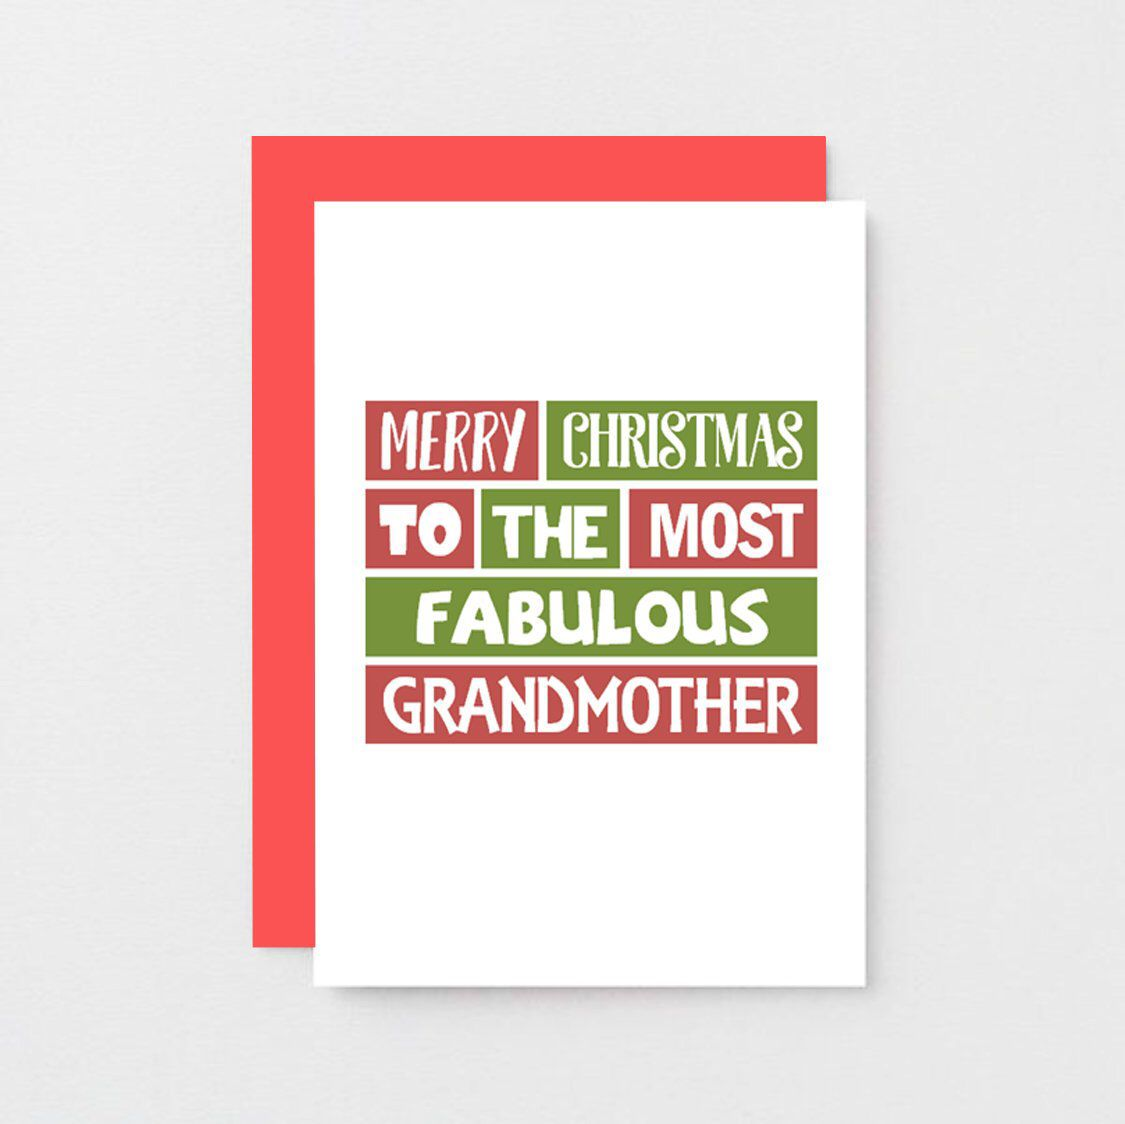 Grandmother Christmas Card Fabulous Grandmother Merry Christmas